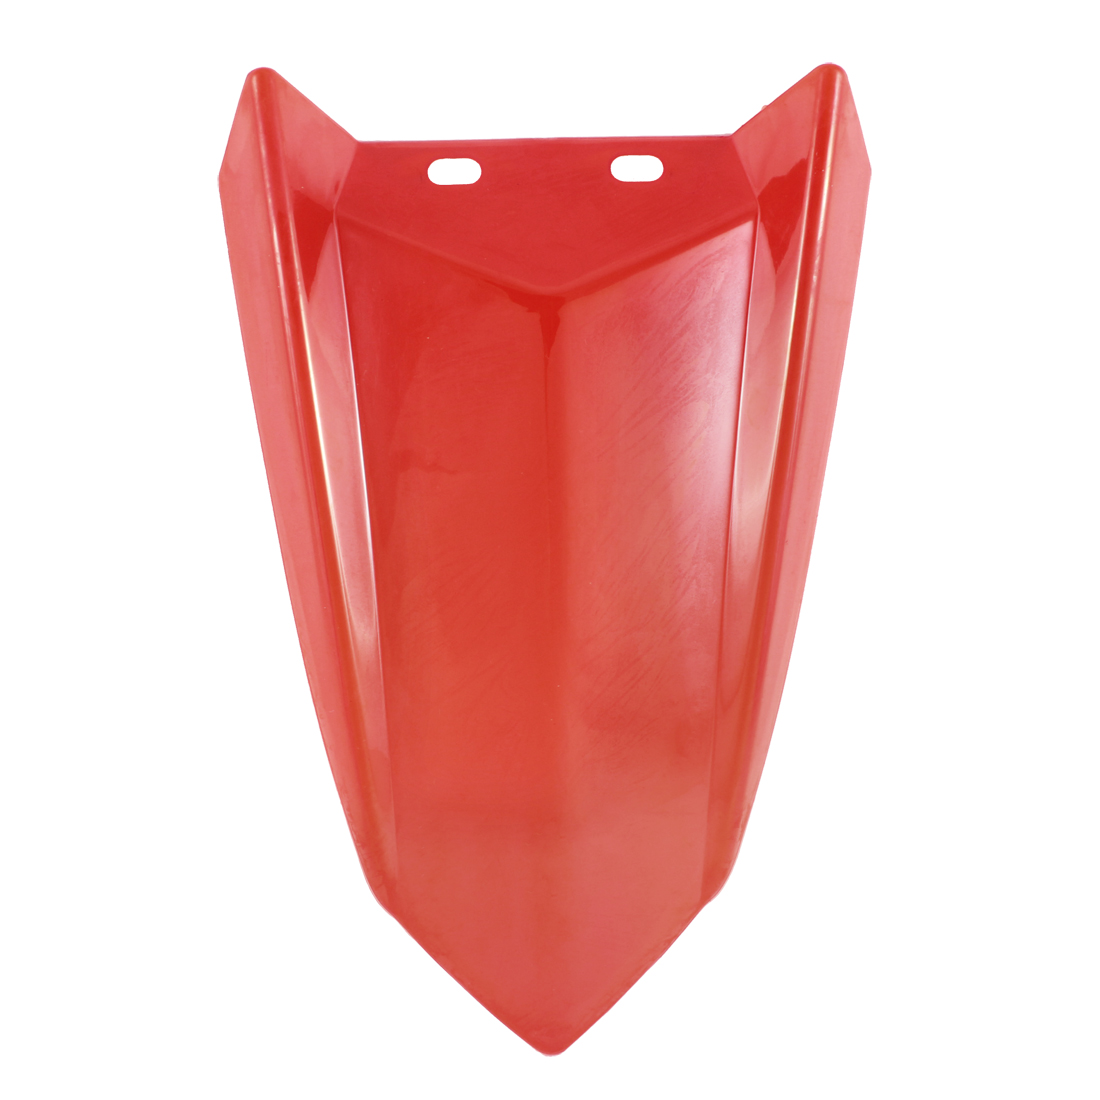 Motorcycle Motorbike Red Plastic Splash Guard Front Mud Flap Protector for BWS